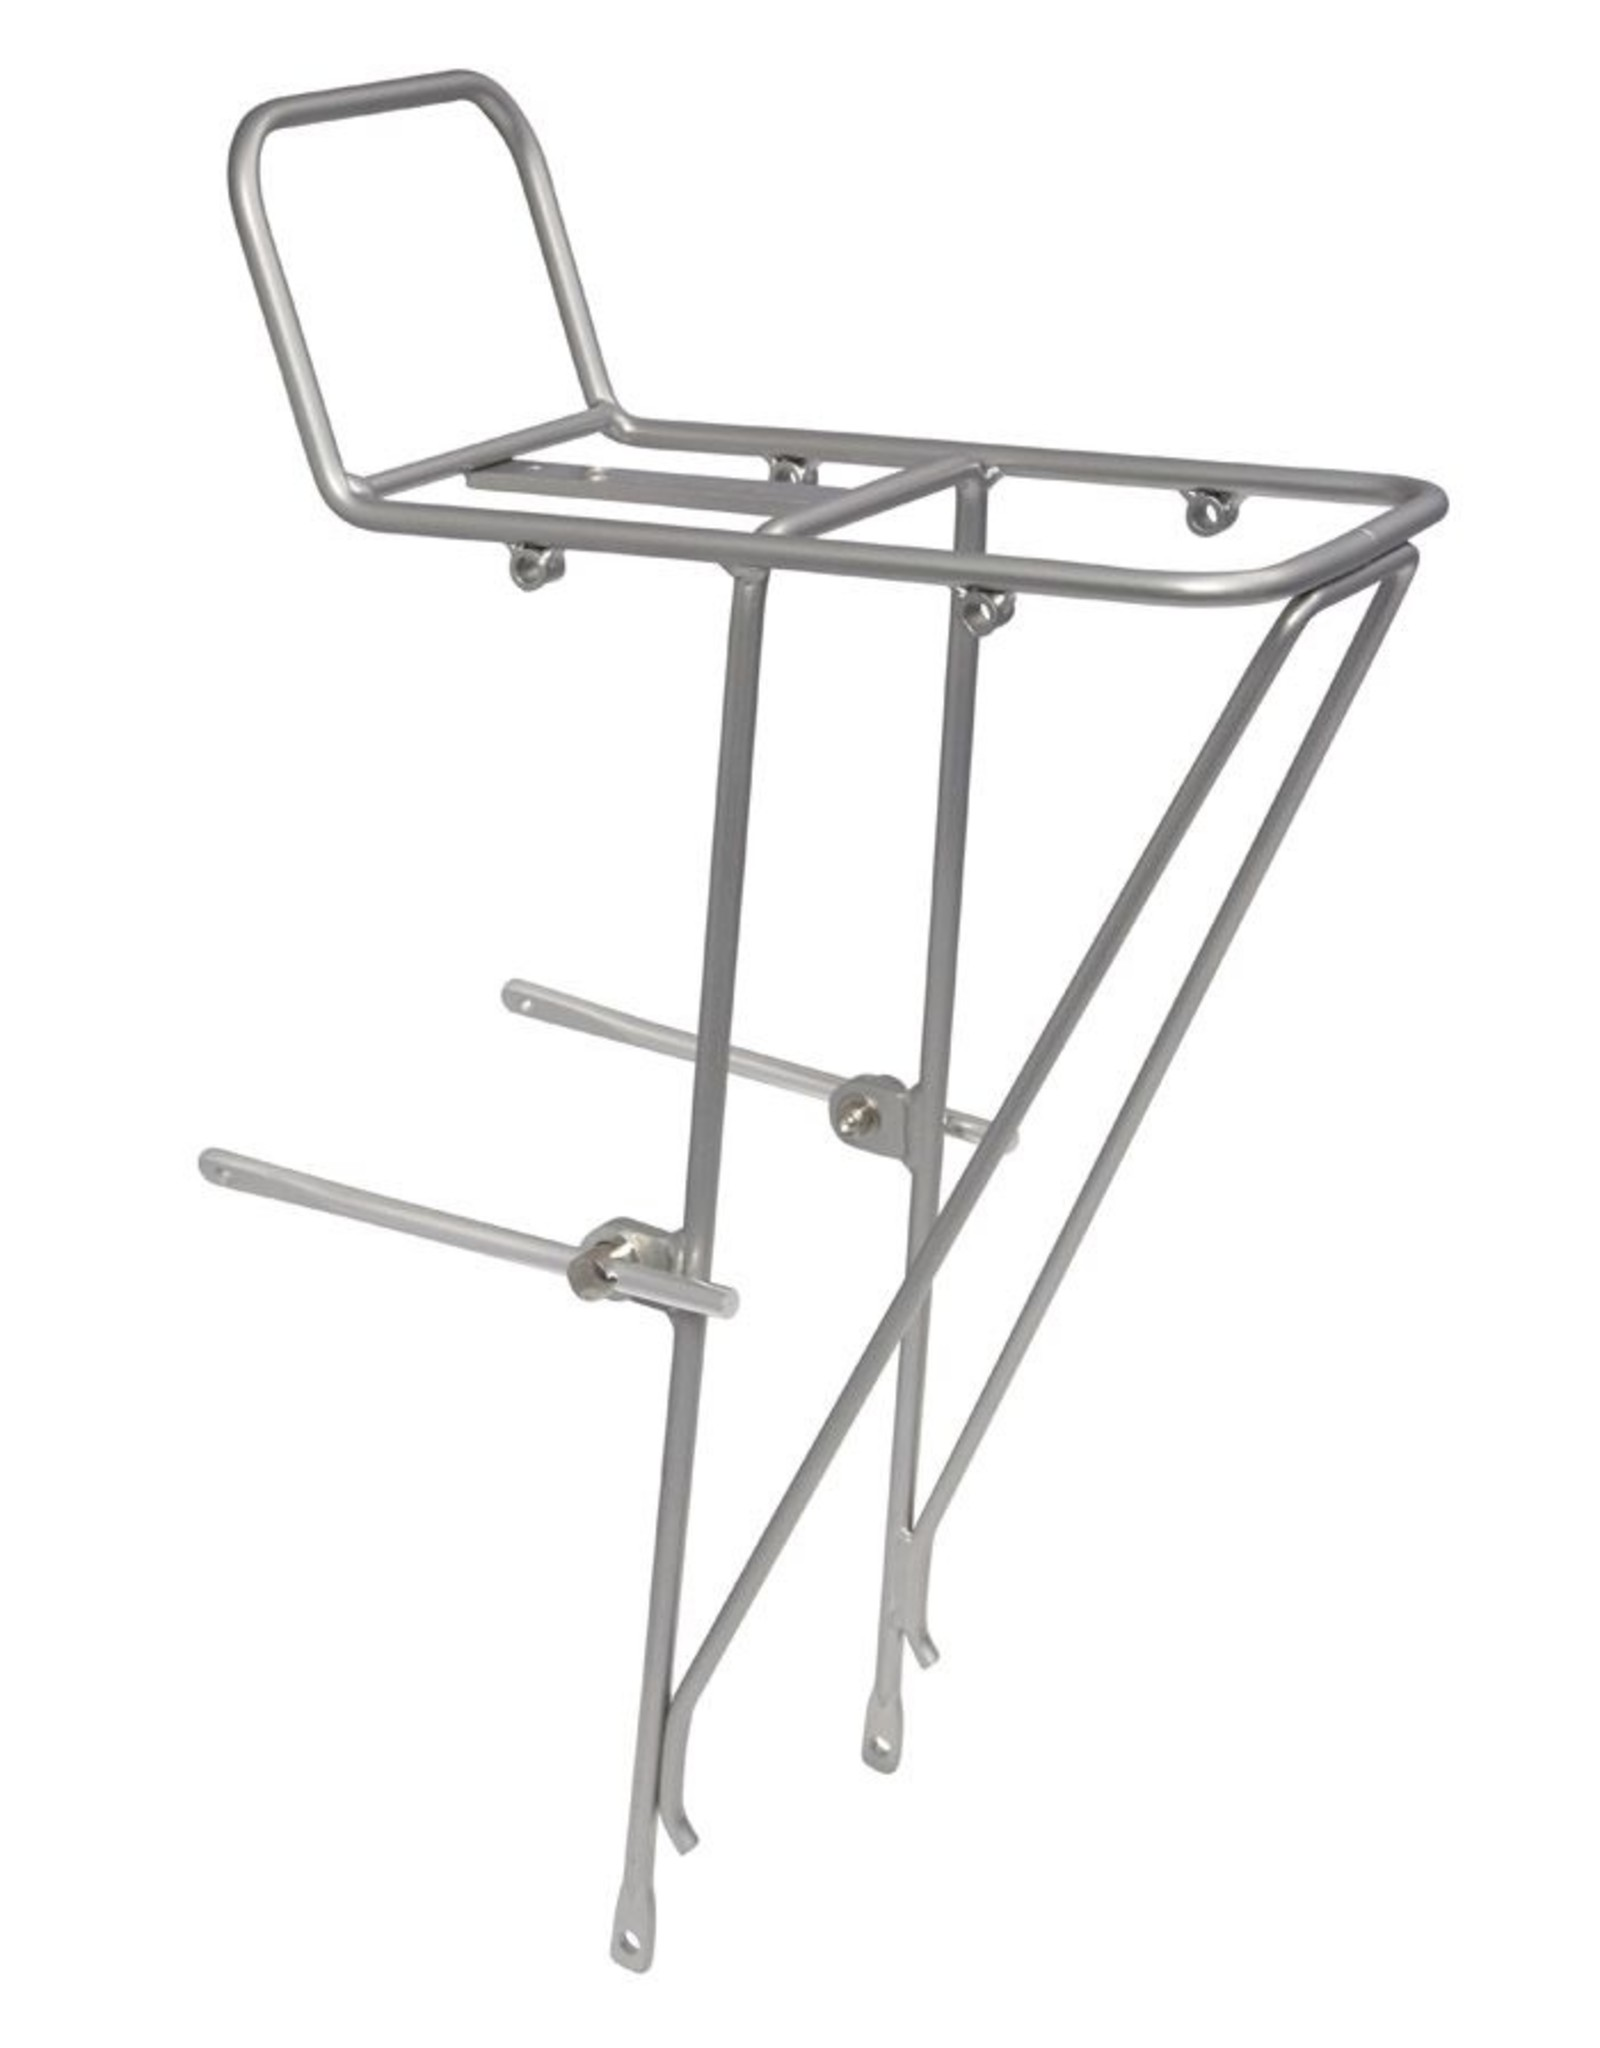 Soma Fabrications Soma Lucas Front Rack